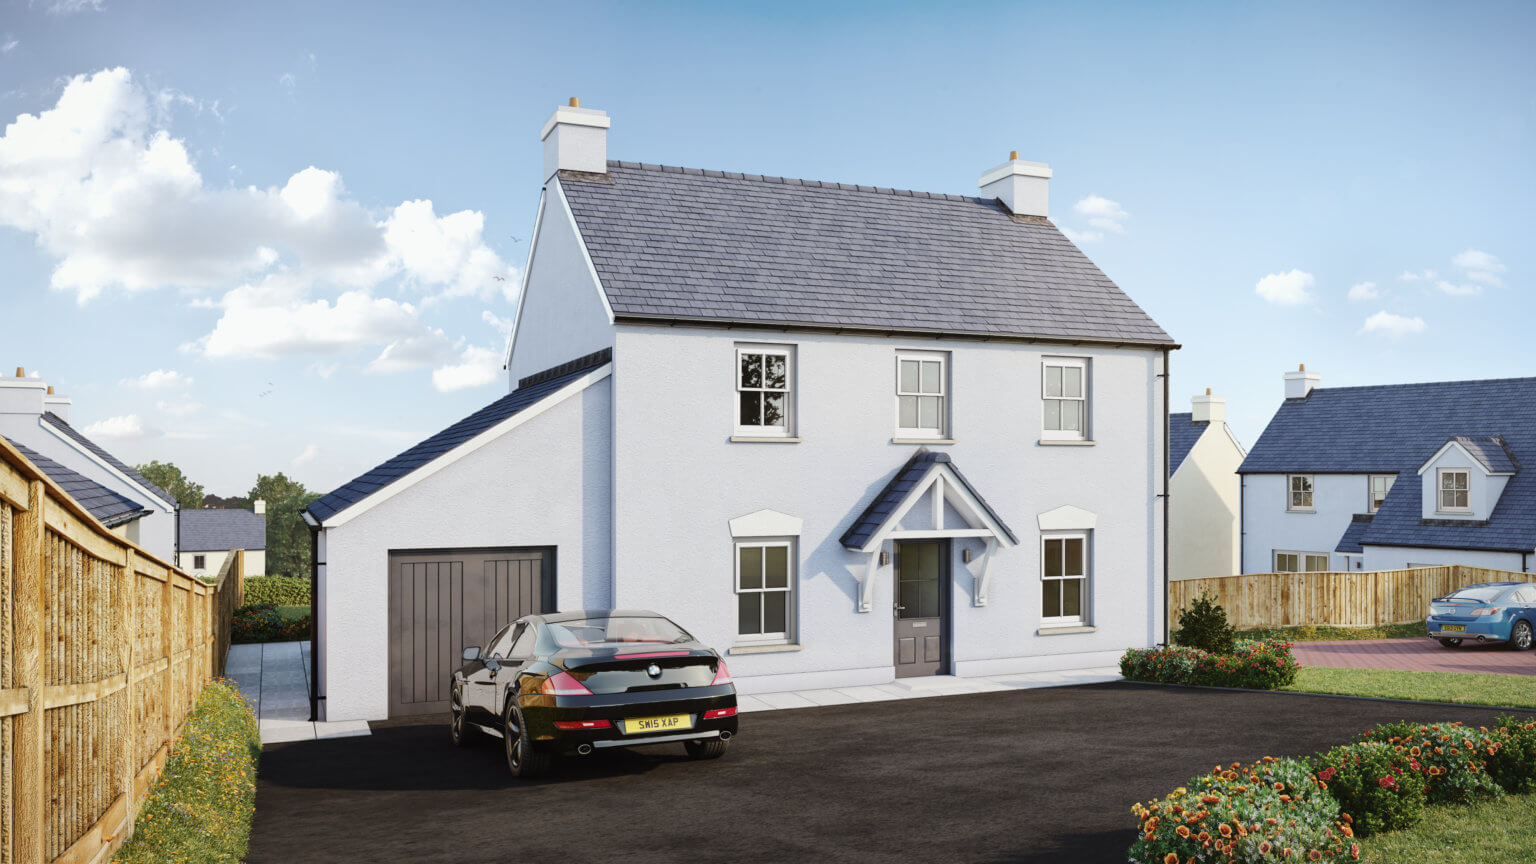 THE FITZMARTIN A Stylish, modern 4 bedroom family home